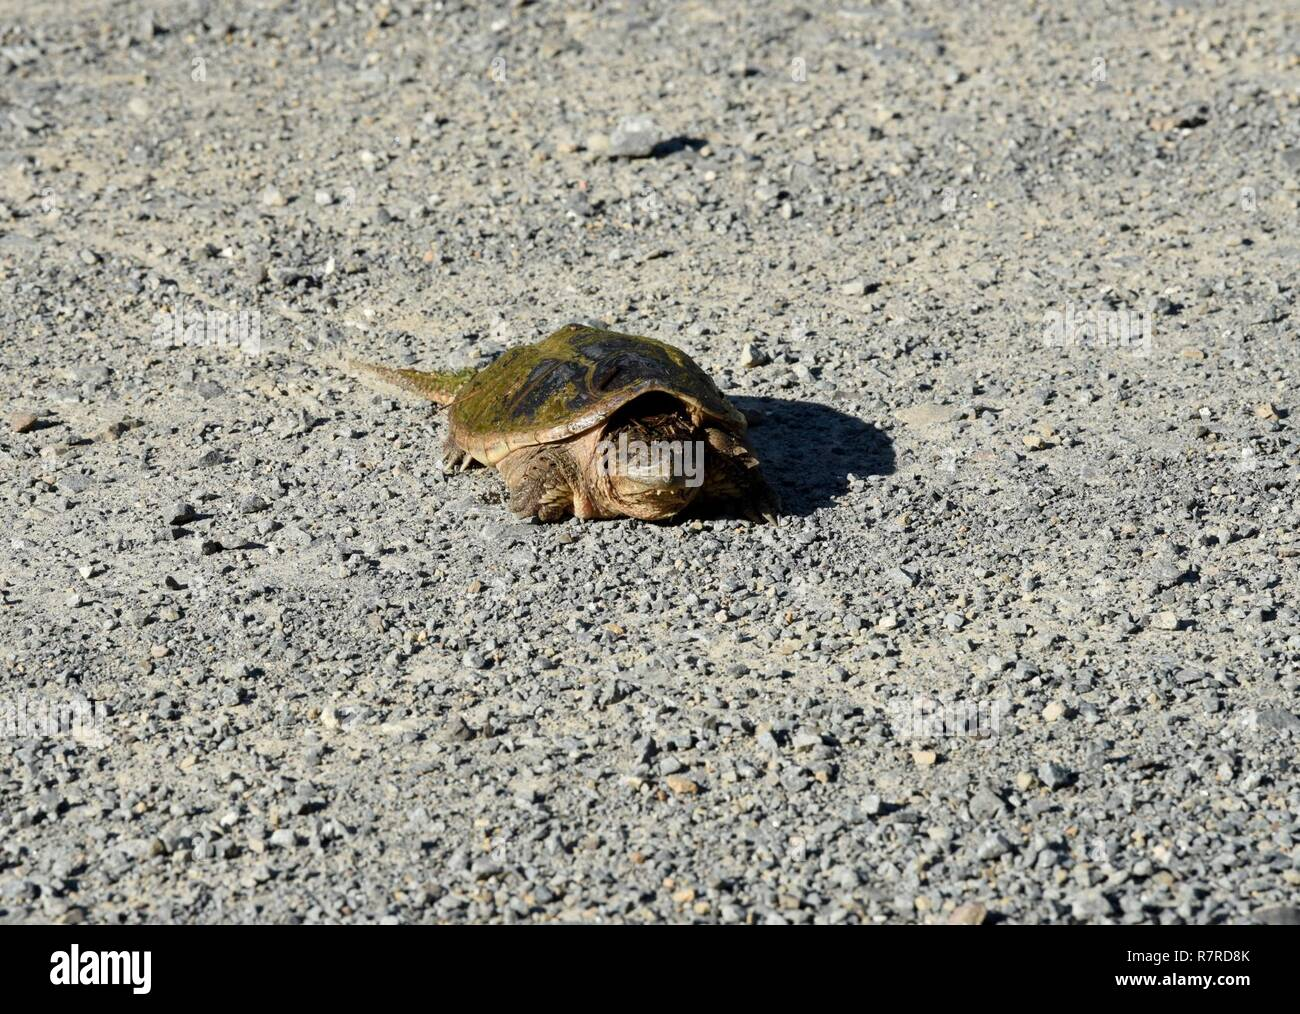 Snapping Turtle Usa Stock Photos & Snapping Turtle Usa Stock Images